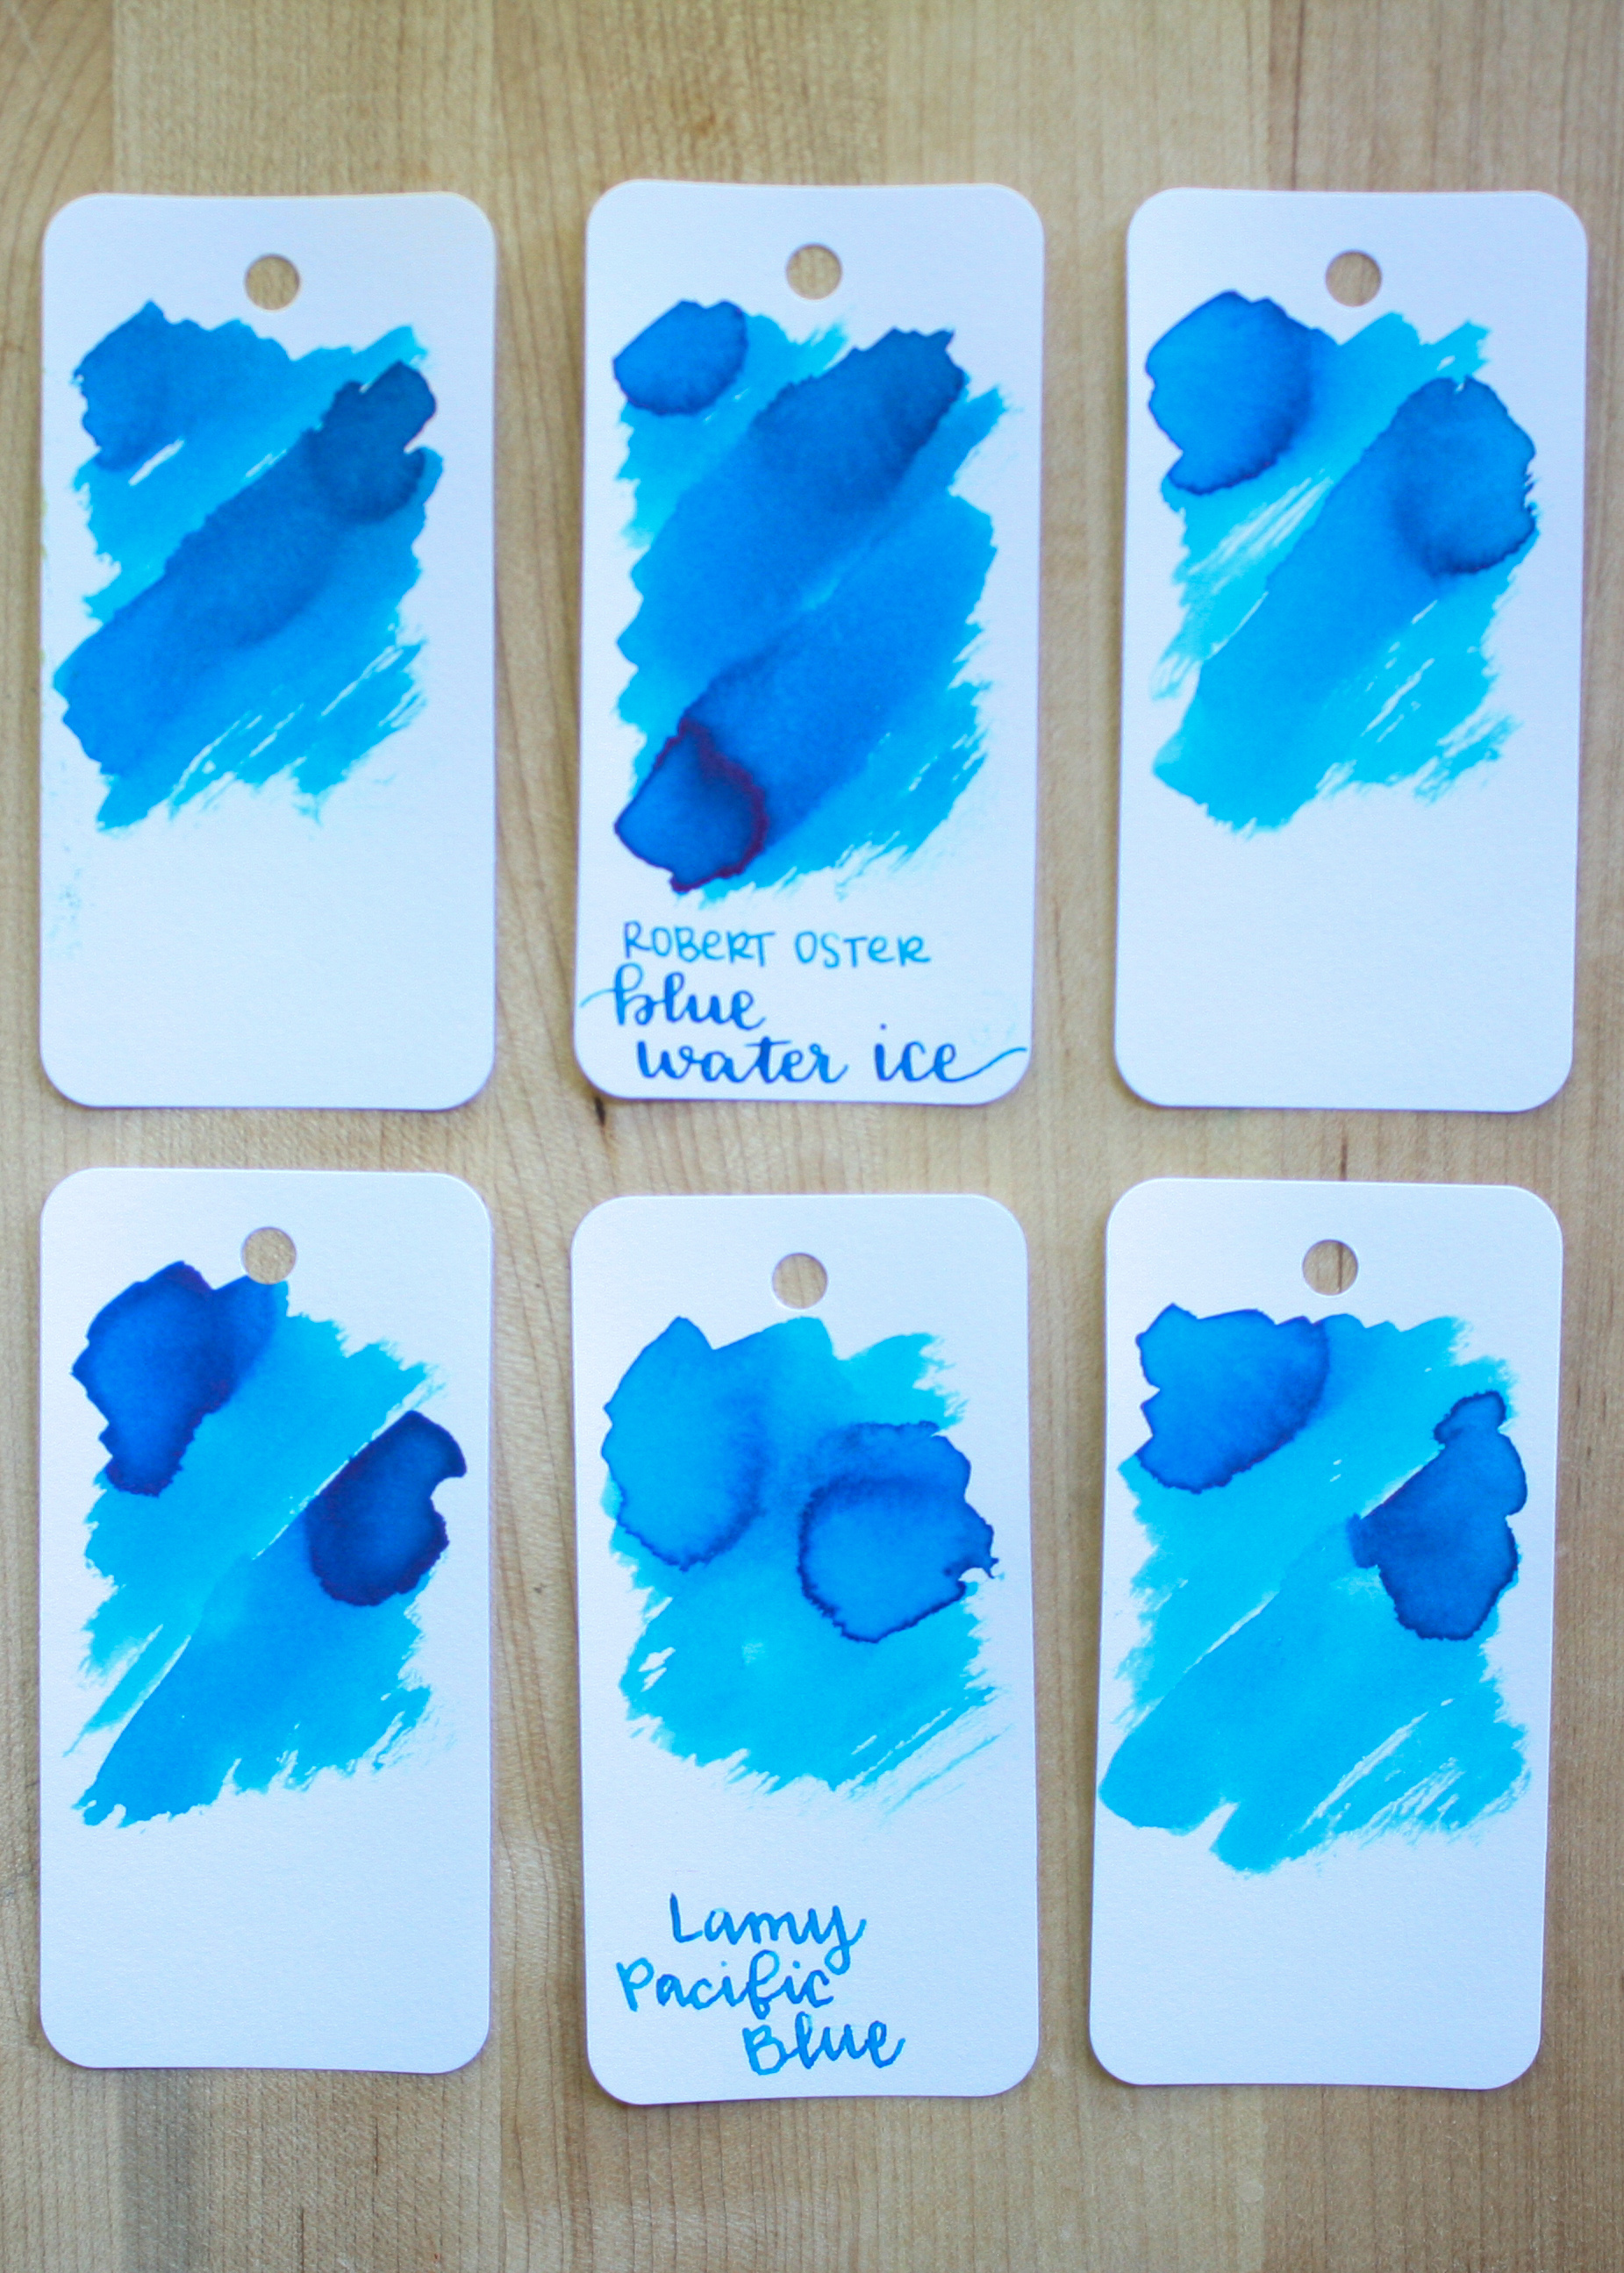 Similar inks: - Top row, left to right: Robert Oster Bondi Blue, Robert Oster Blue Water Ice, and Robert Oster Australian Sky Blue. Bottom row: Noodler's Navajo Turquoise, Lamy Pacific Blue, and Diamine Havasu Turquoise.